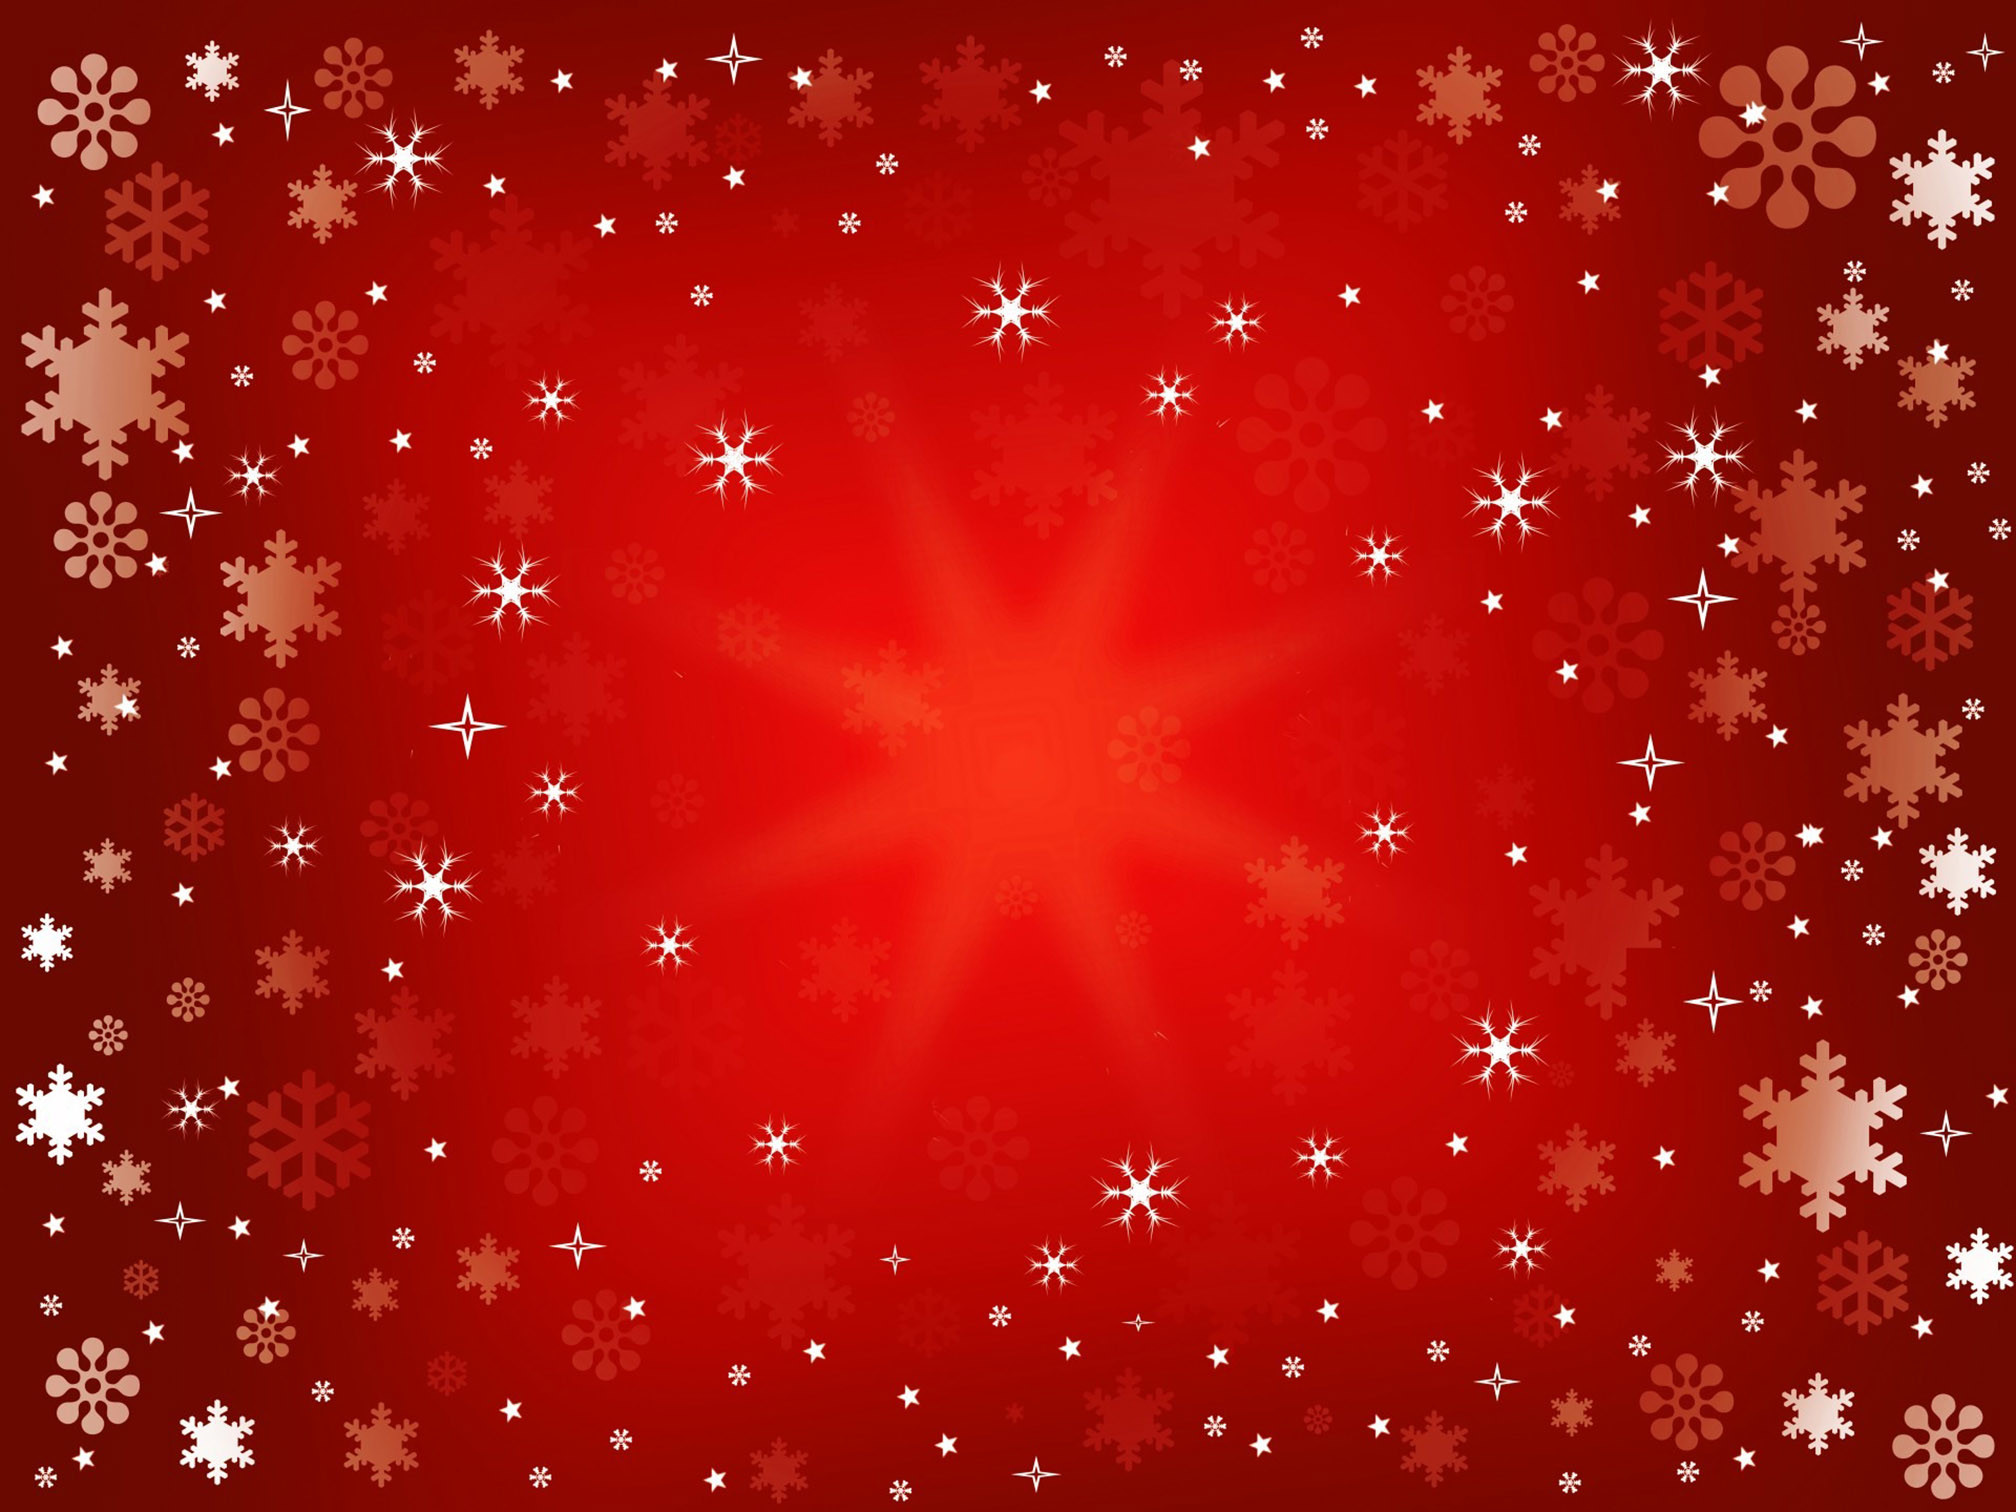 35 Stars at Xmas Background Images, Cards or Christmas Wallpapers    www.myfreetextures.com   1500+ Free Textures, Stock Photos & Background  Images